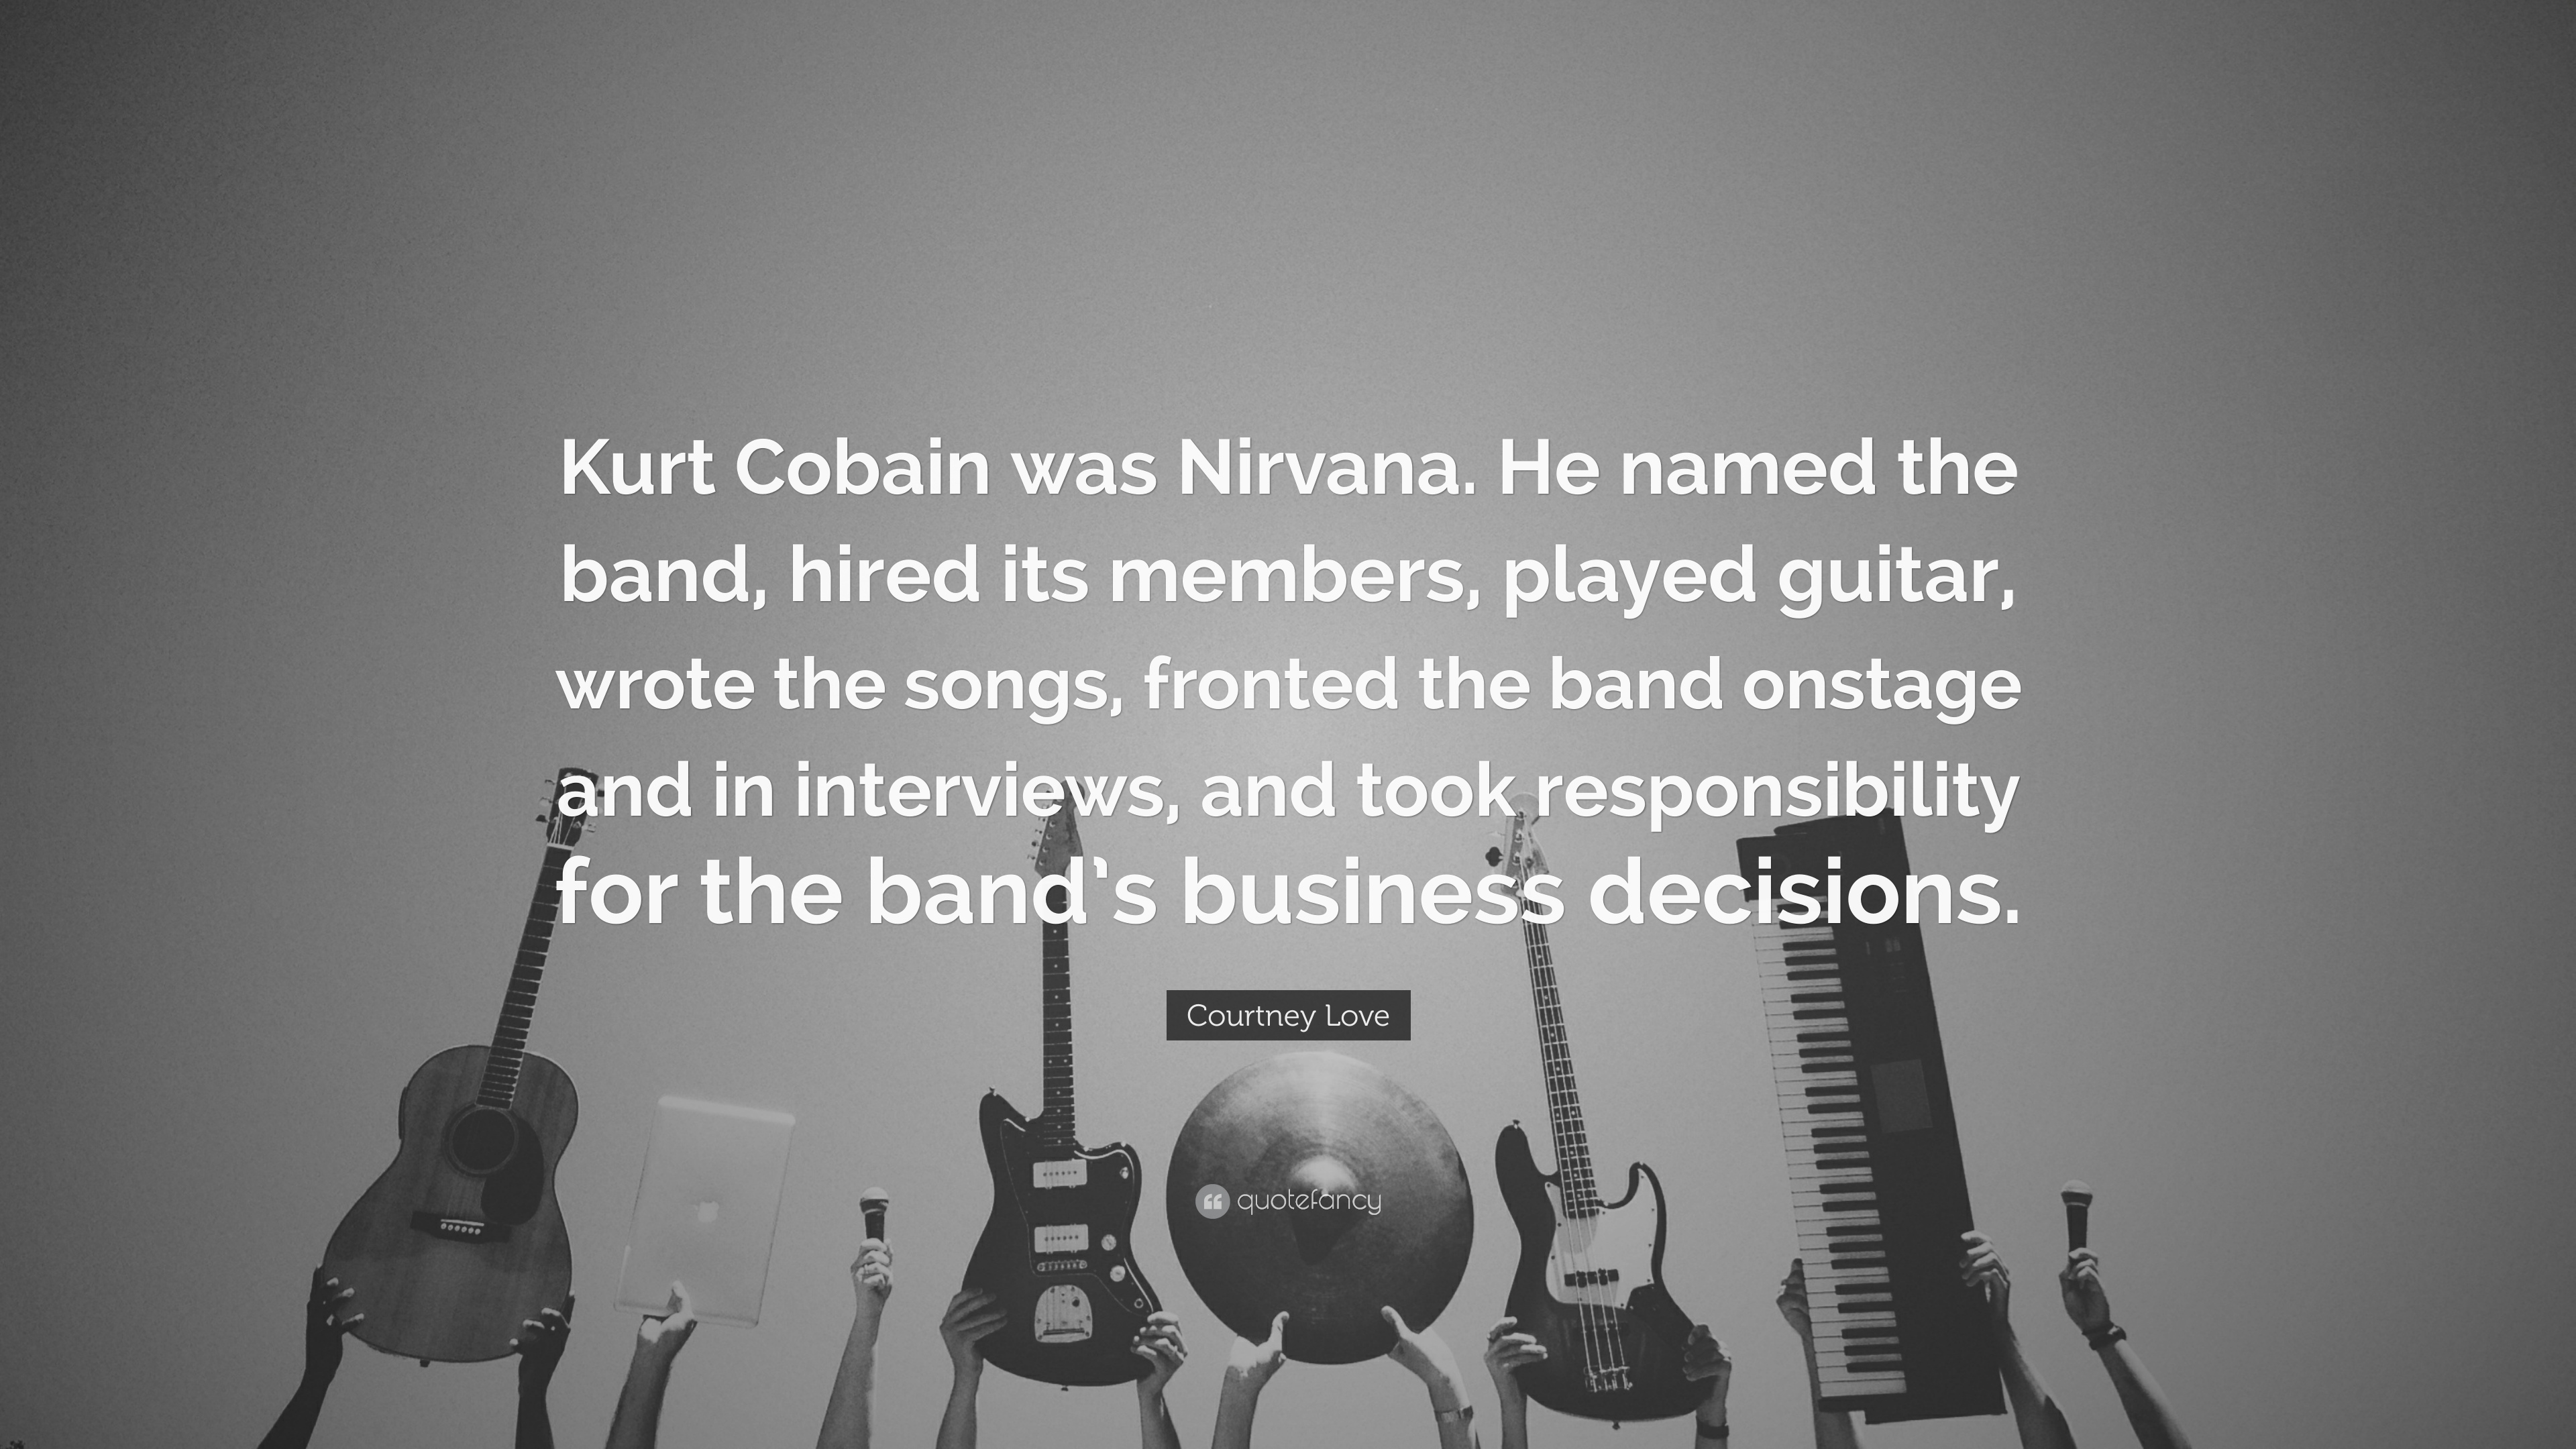 Top Wallpaper Love Guitar - 686315-Courtney-Love-Quote-Kurt-Cobain-was-Nirvana-He-named-the-band  Collection_25597.jpg